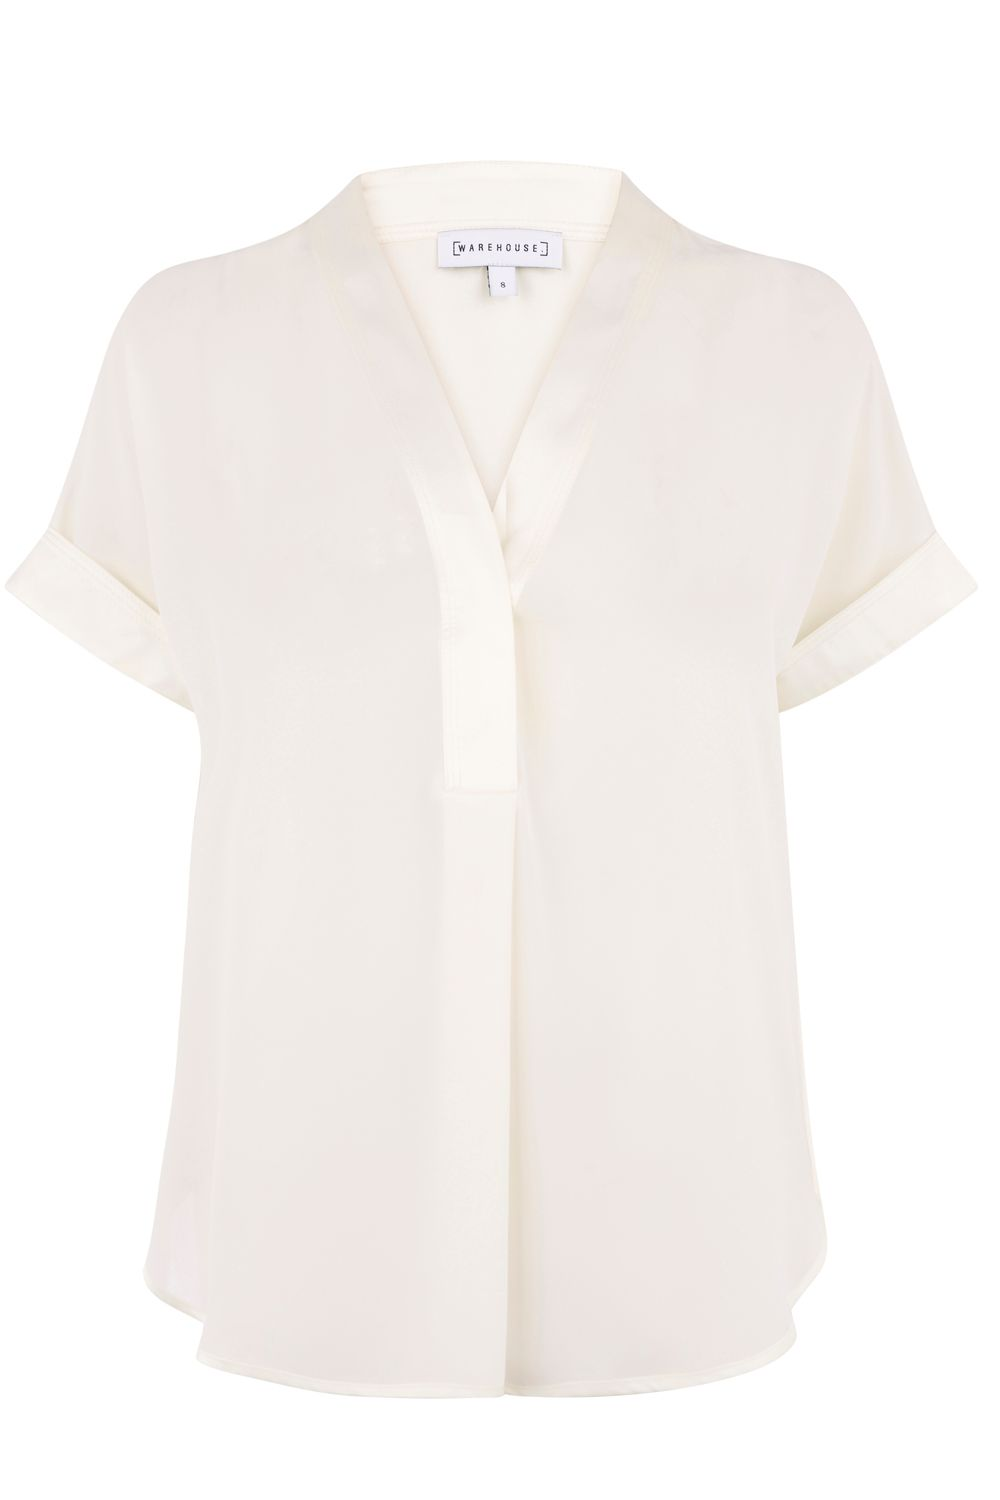 Warehouse Satin Mix Blouse, Cream